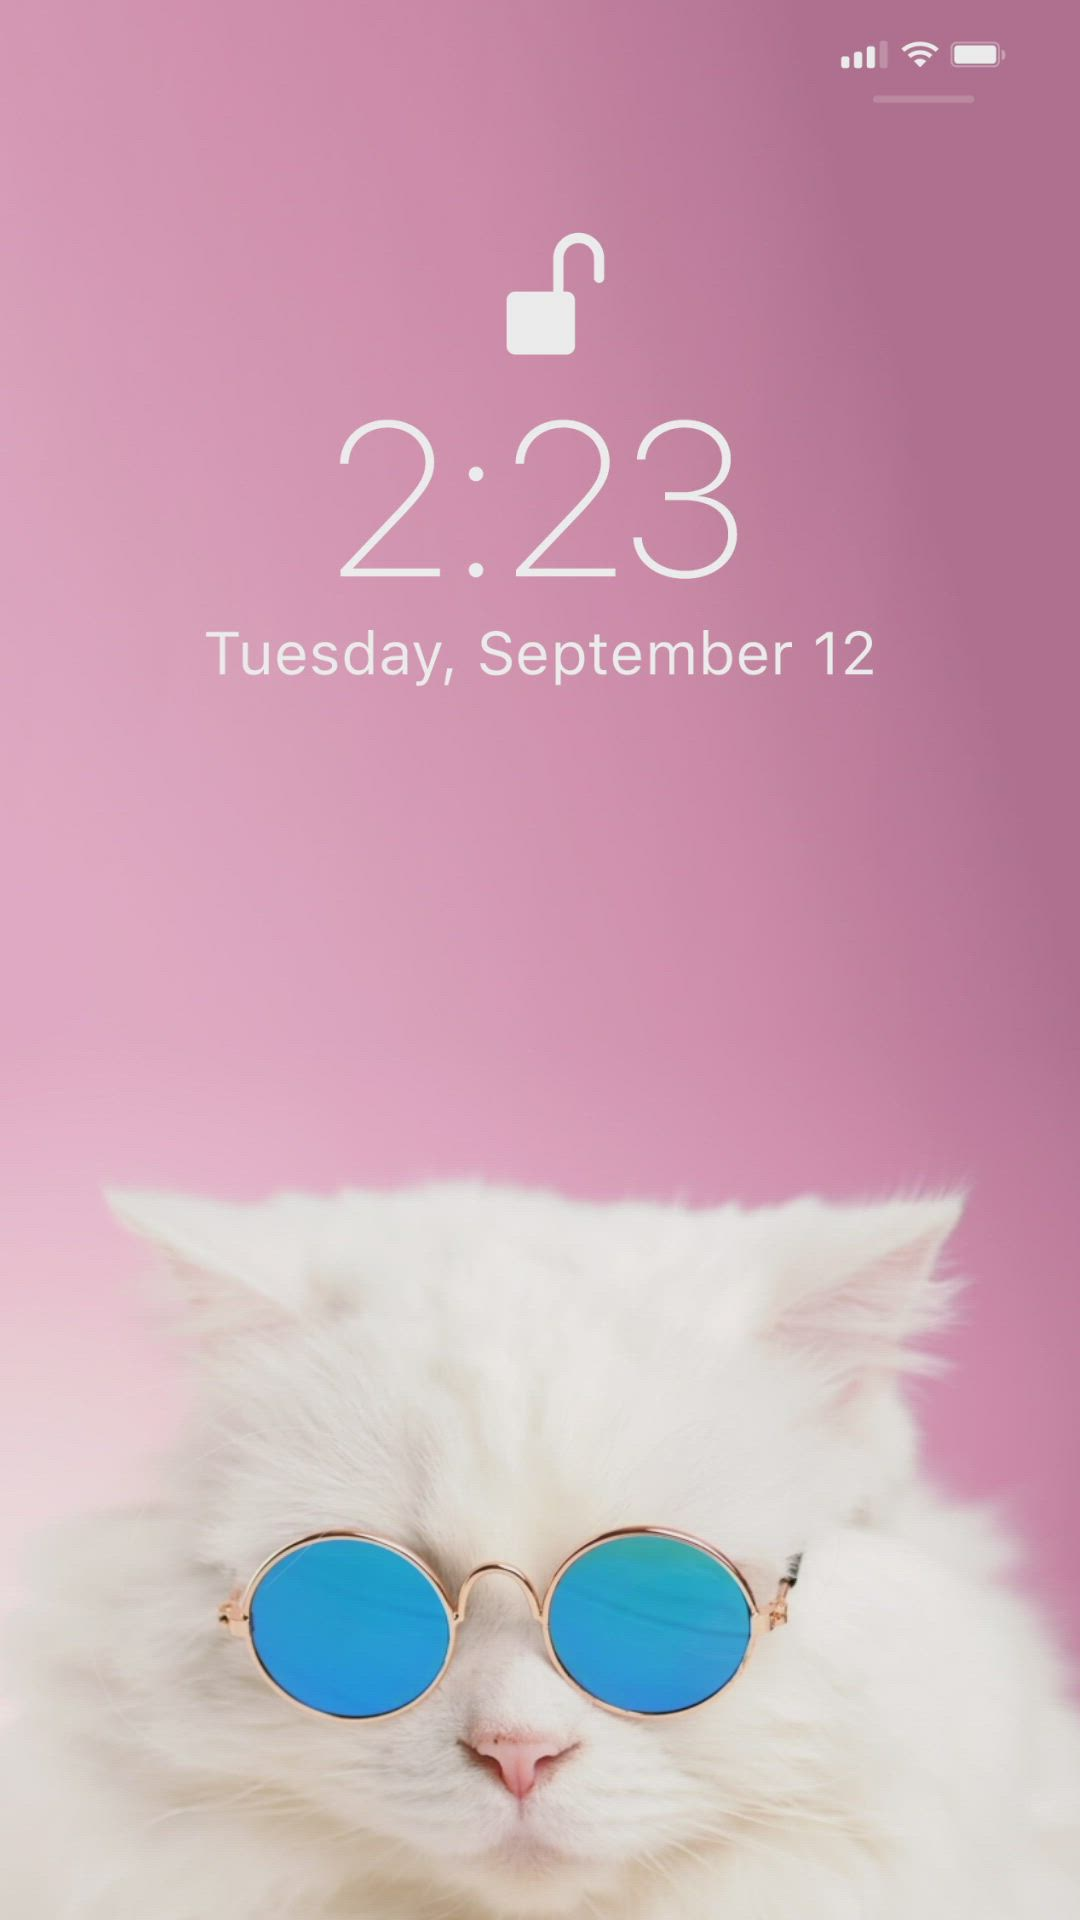 Pin By Everpix Live On Live Wallpapers From Everpix Live Video Wallpaper Iphone Cute Disney Wallpaper Iphone Wallpaper